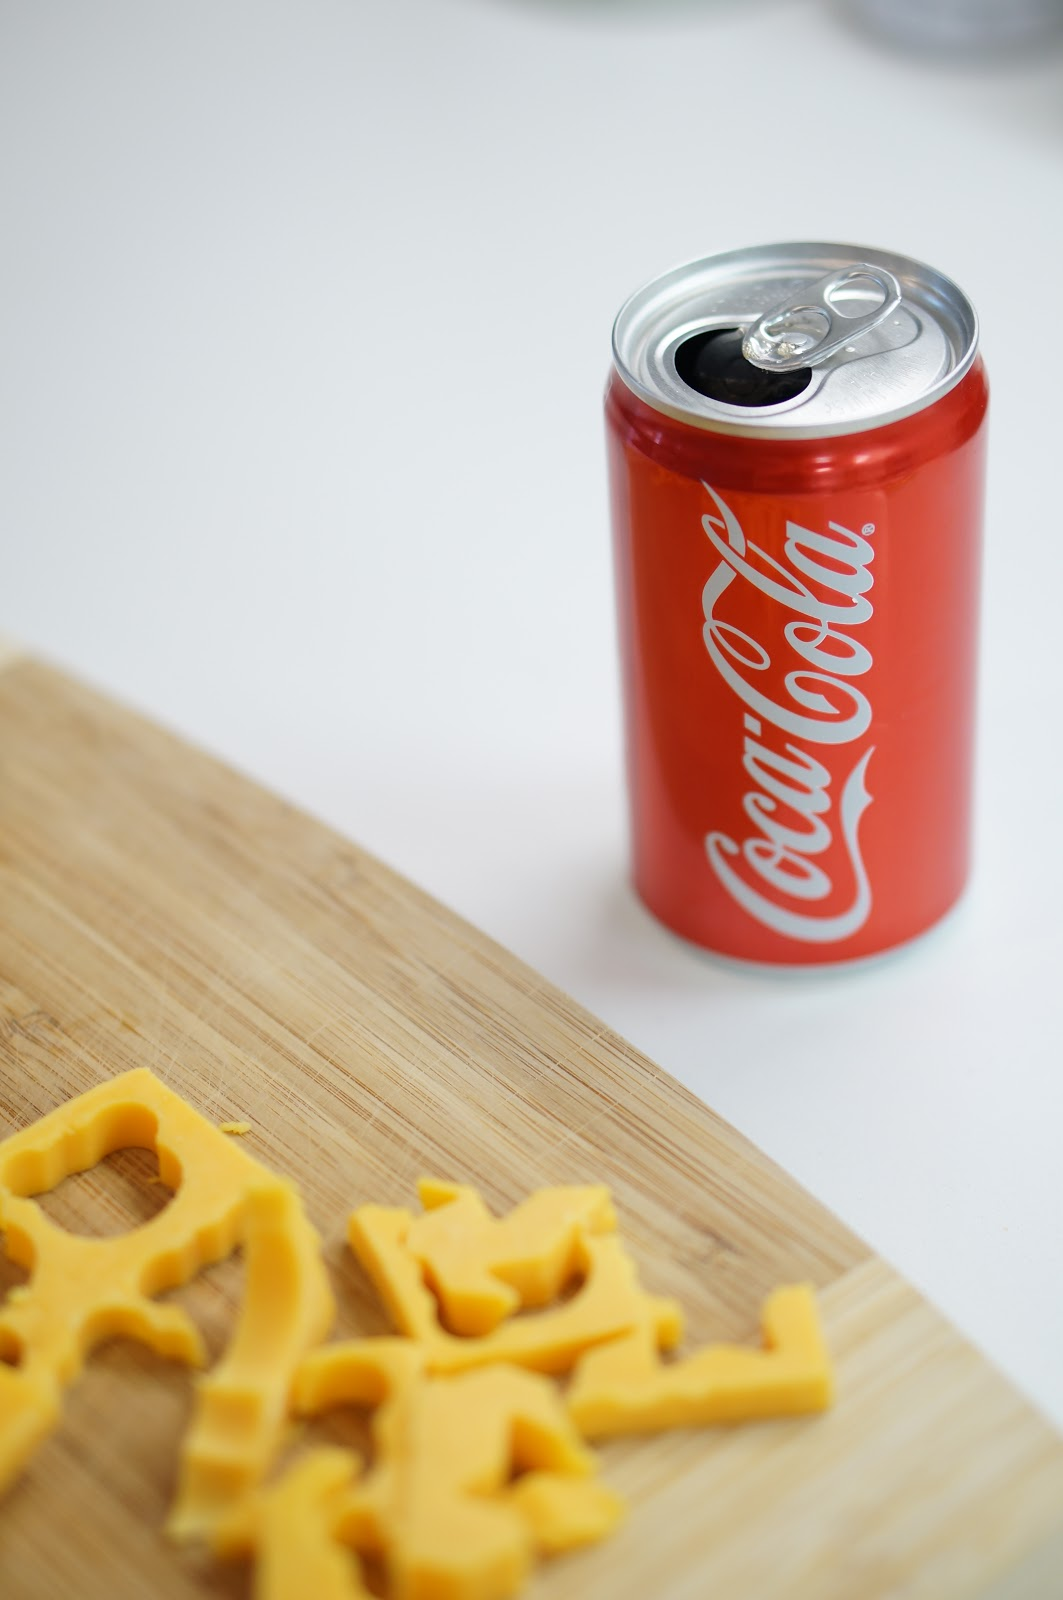 Rebecca Lately After School Snacks Fruit and Cheese Kabobs with Coca Cola™ #CollectiveBias #ad #AFreshIdeaForAfterSchool